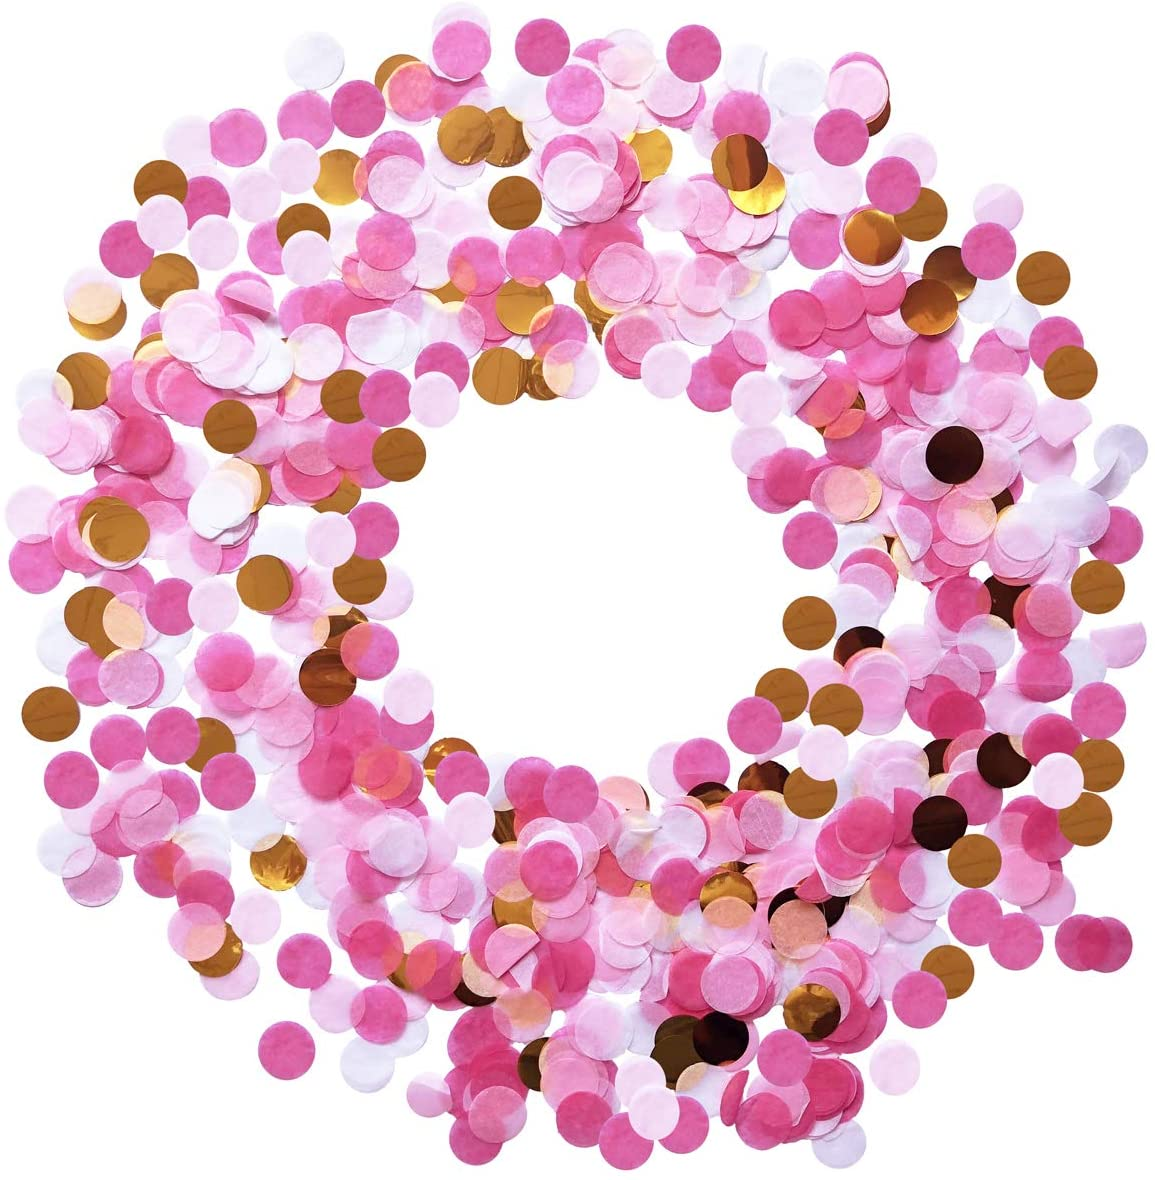 Balloon Confetti 50g Circle Table Confetti 1 INCH Tissue Paper Round Party Confetti for Baby Shower Birthday Party and Graduation Ceremony (Pink Set)